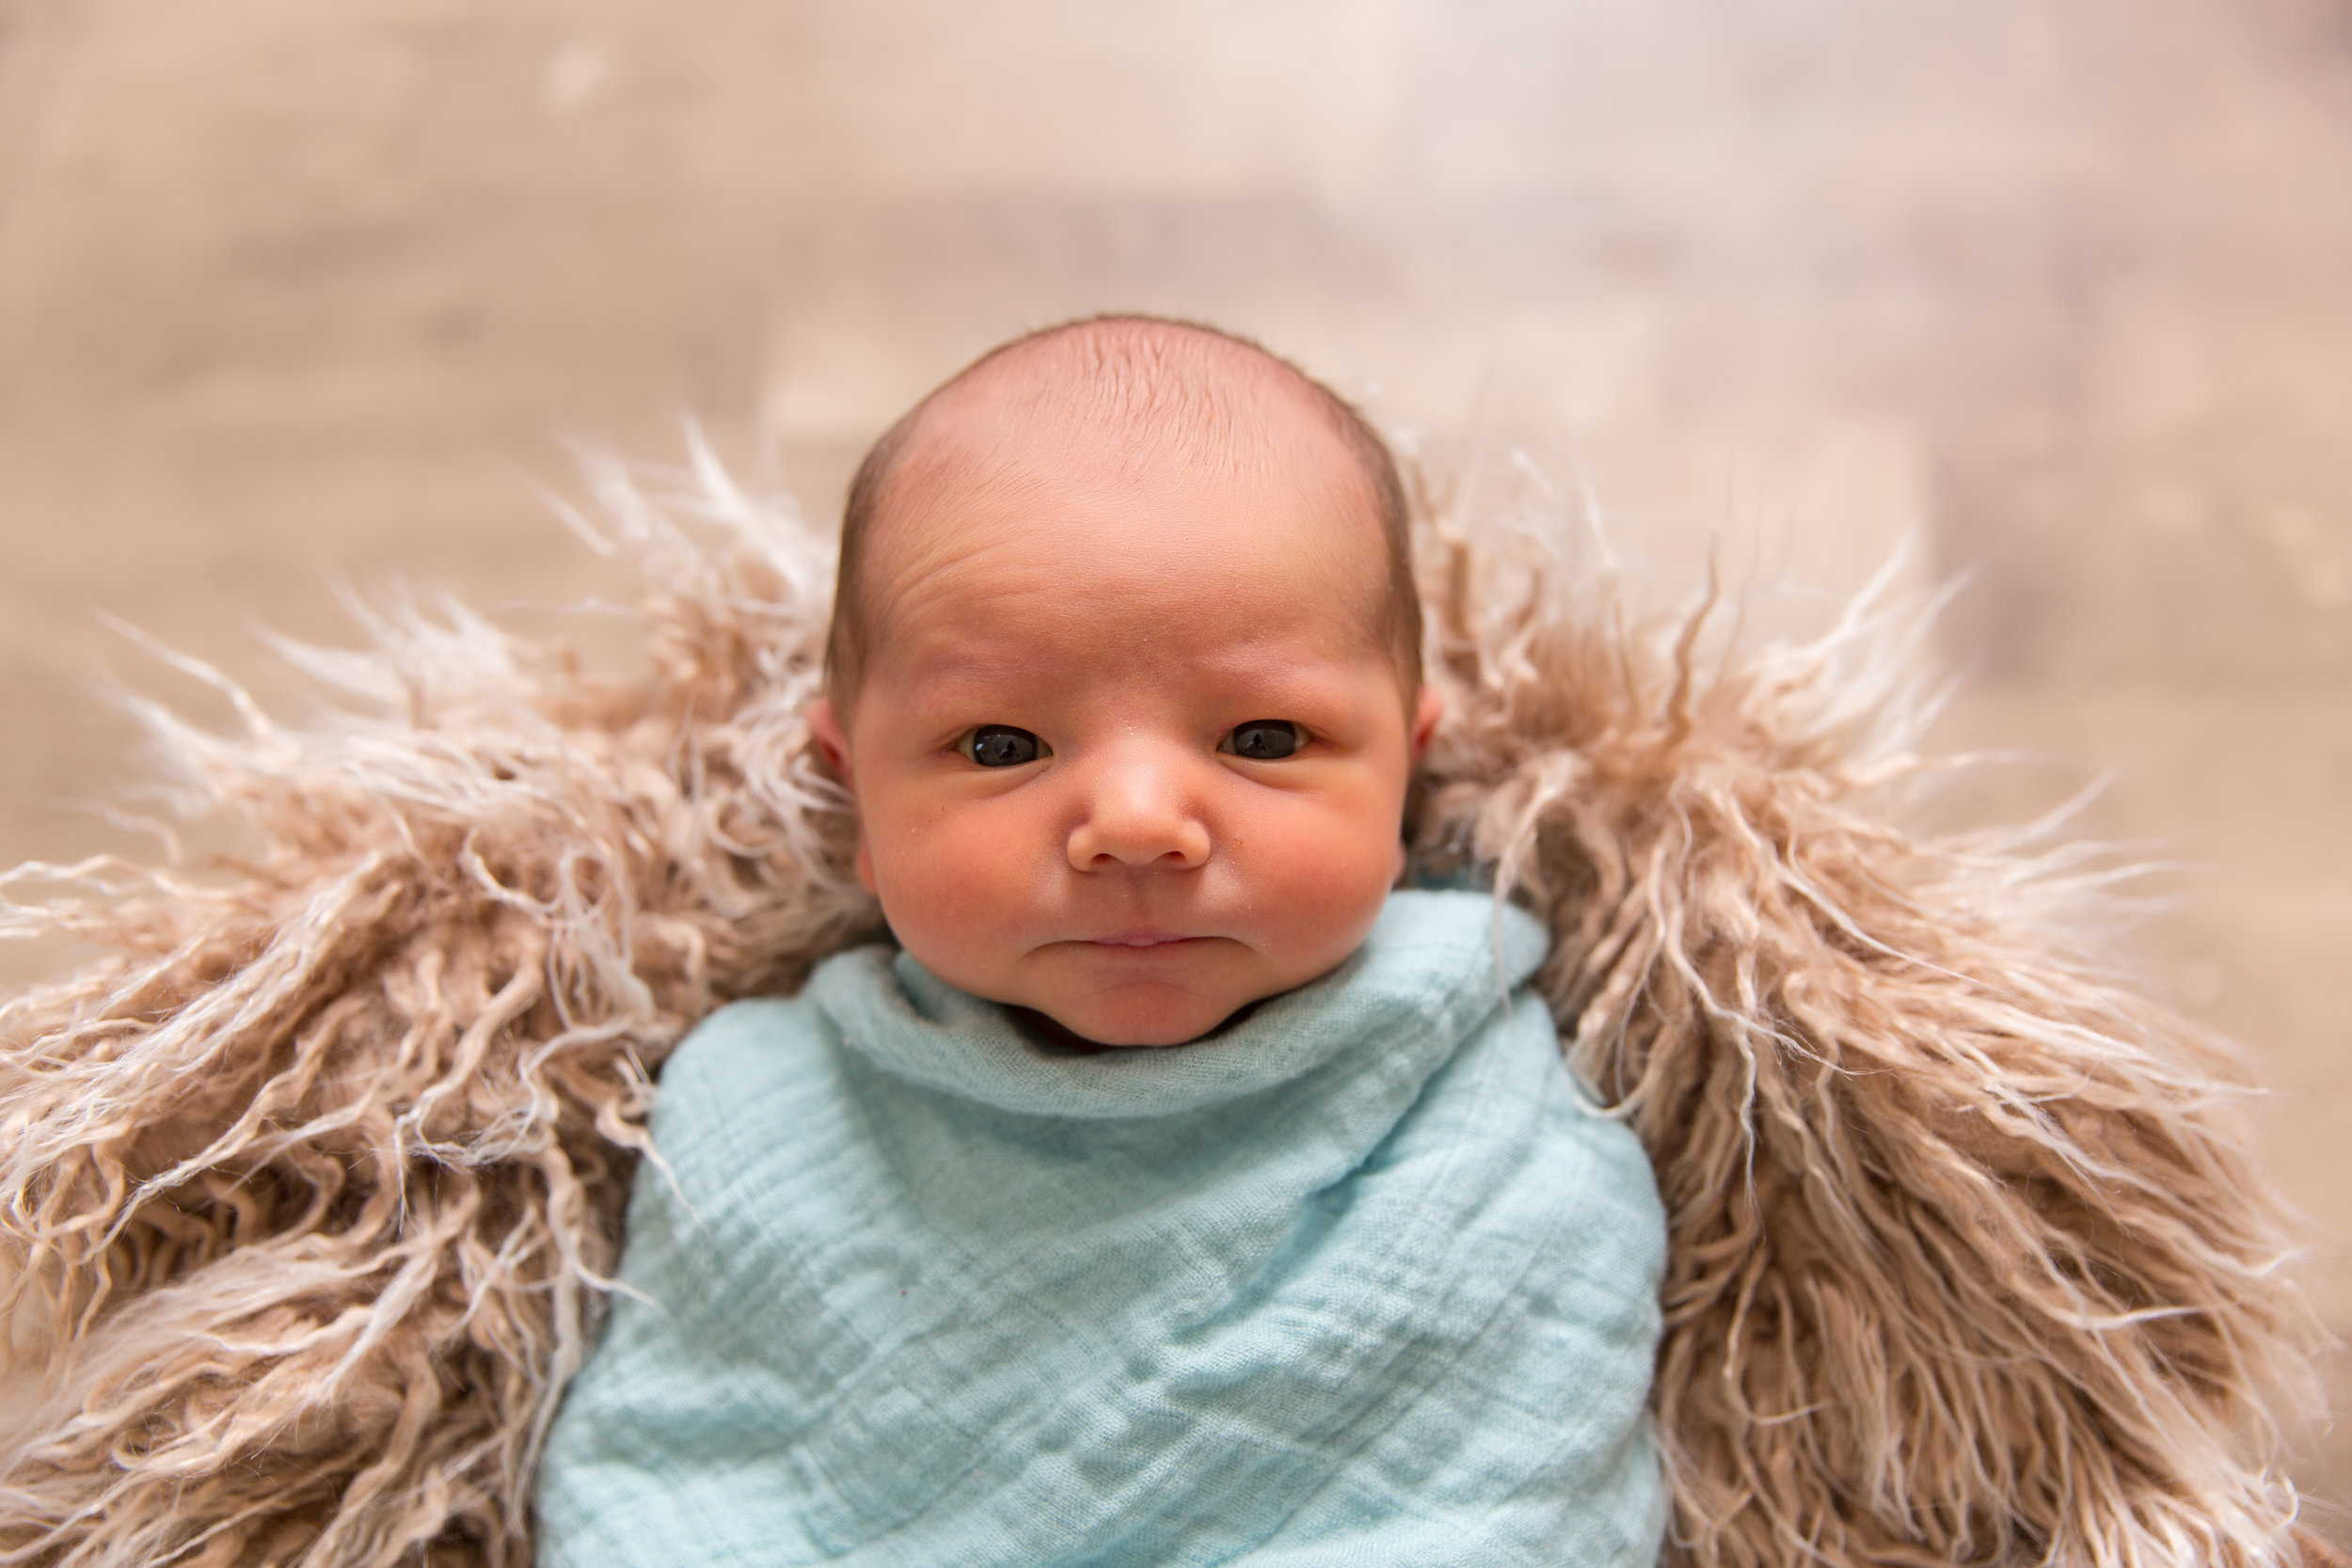 At 6 days new, this handsome little guy joined me in the studio for his newborn session. I was lucky enough to meet another penguin fan and incorporate my favorite sport, hockey, into the images. Thanks for letting me cuddle you little Blake :)